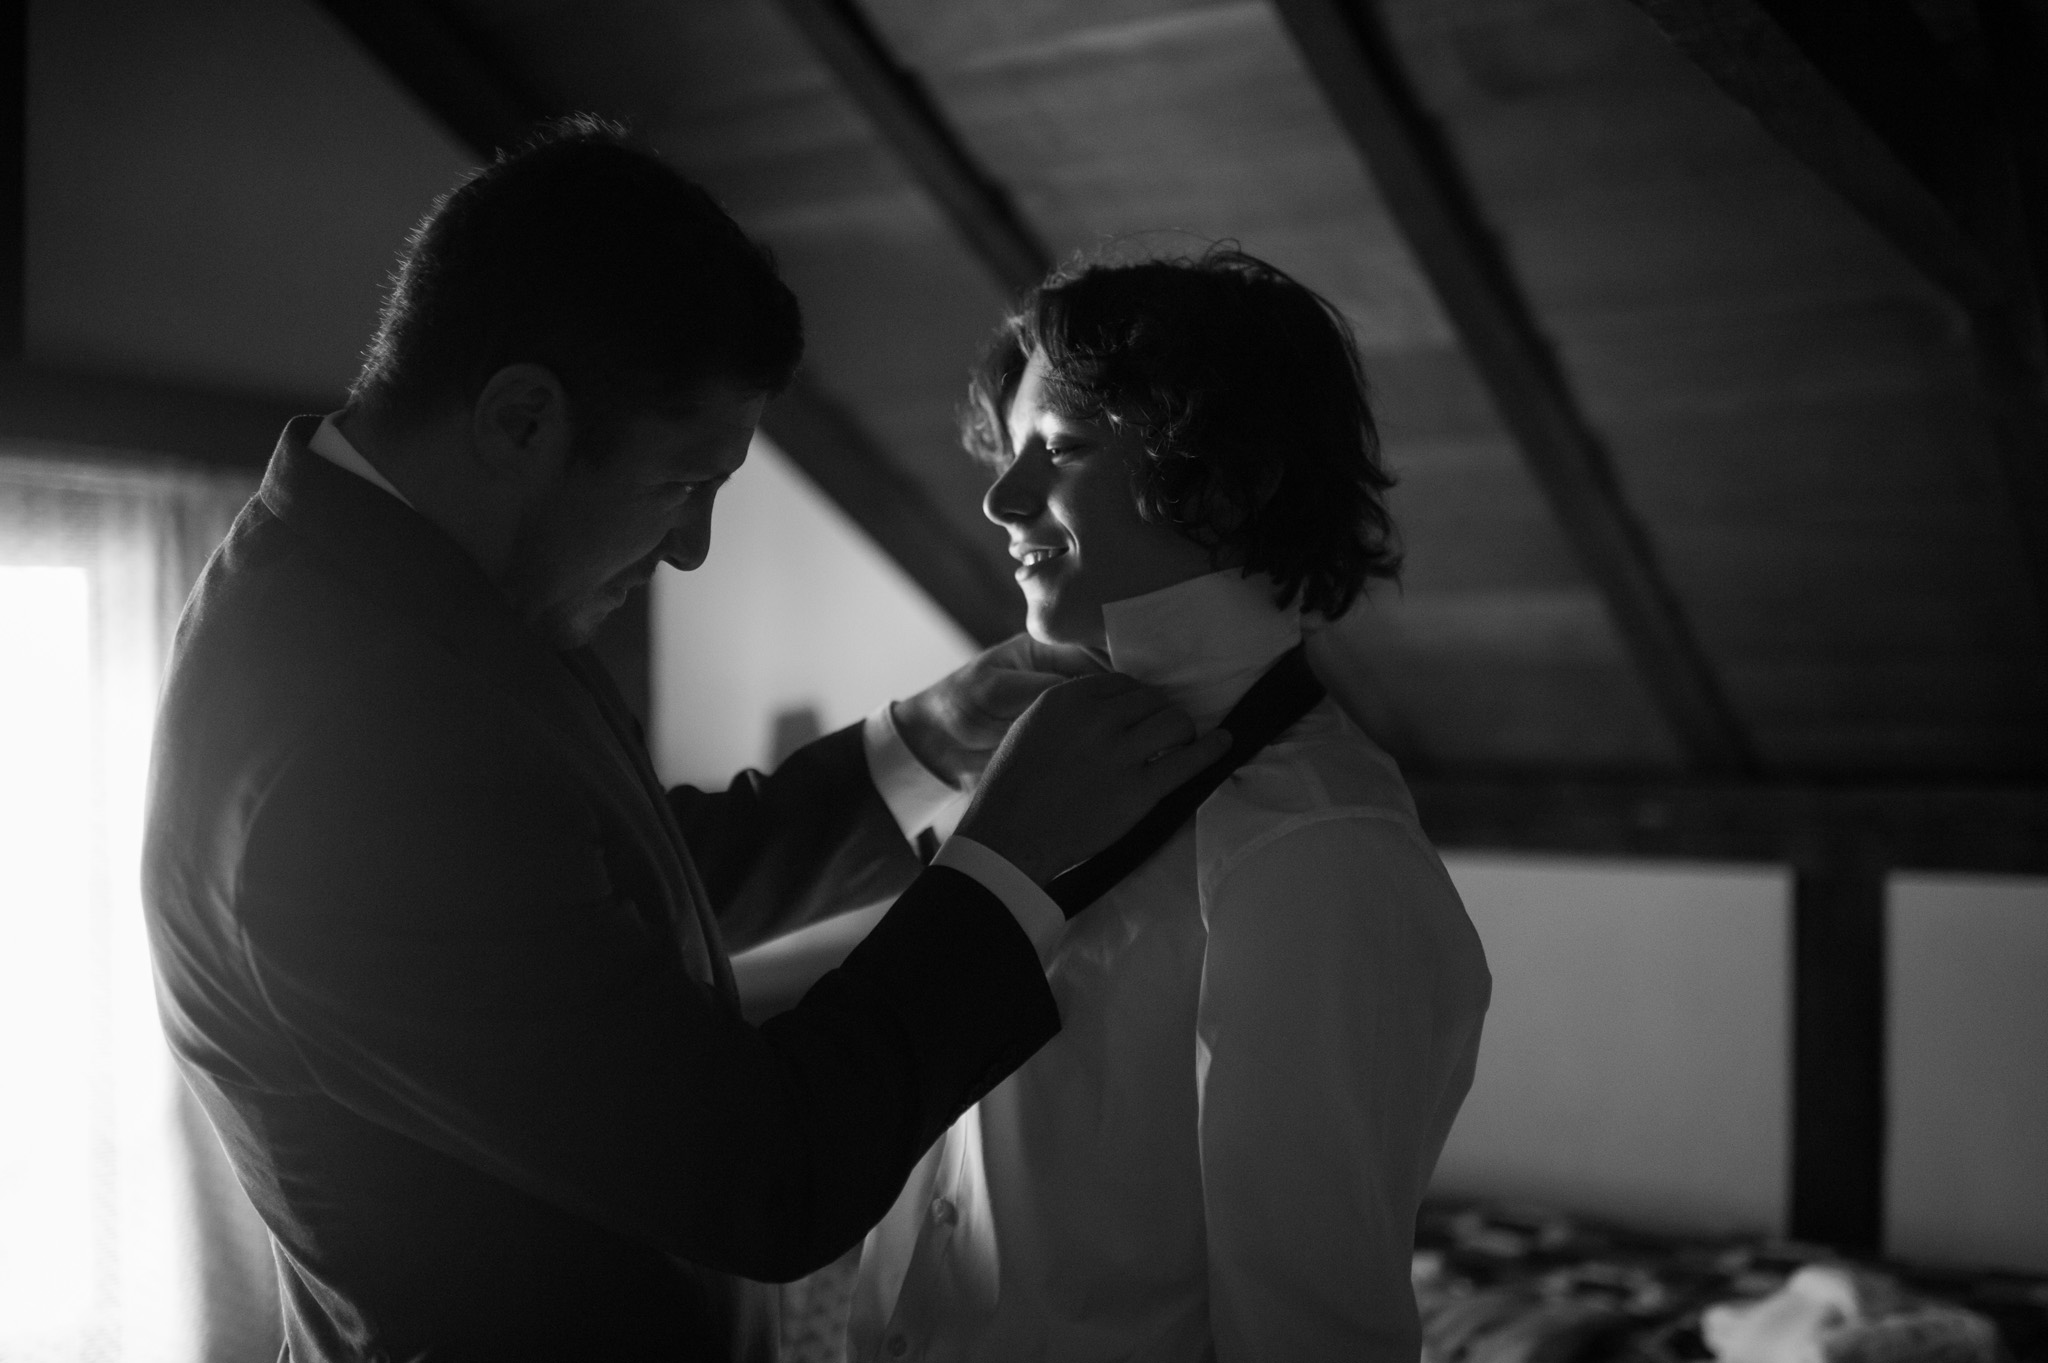 groom and son wedding preparations by Erin Borzellino wedding photographer